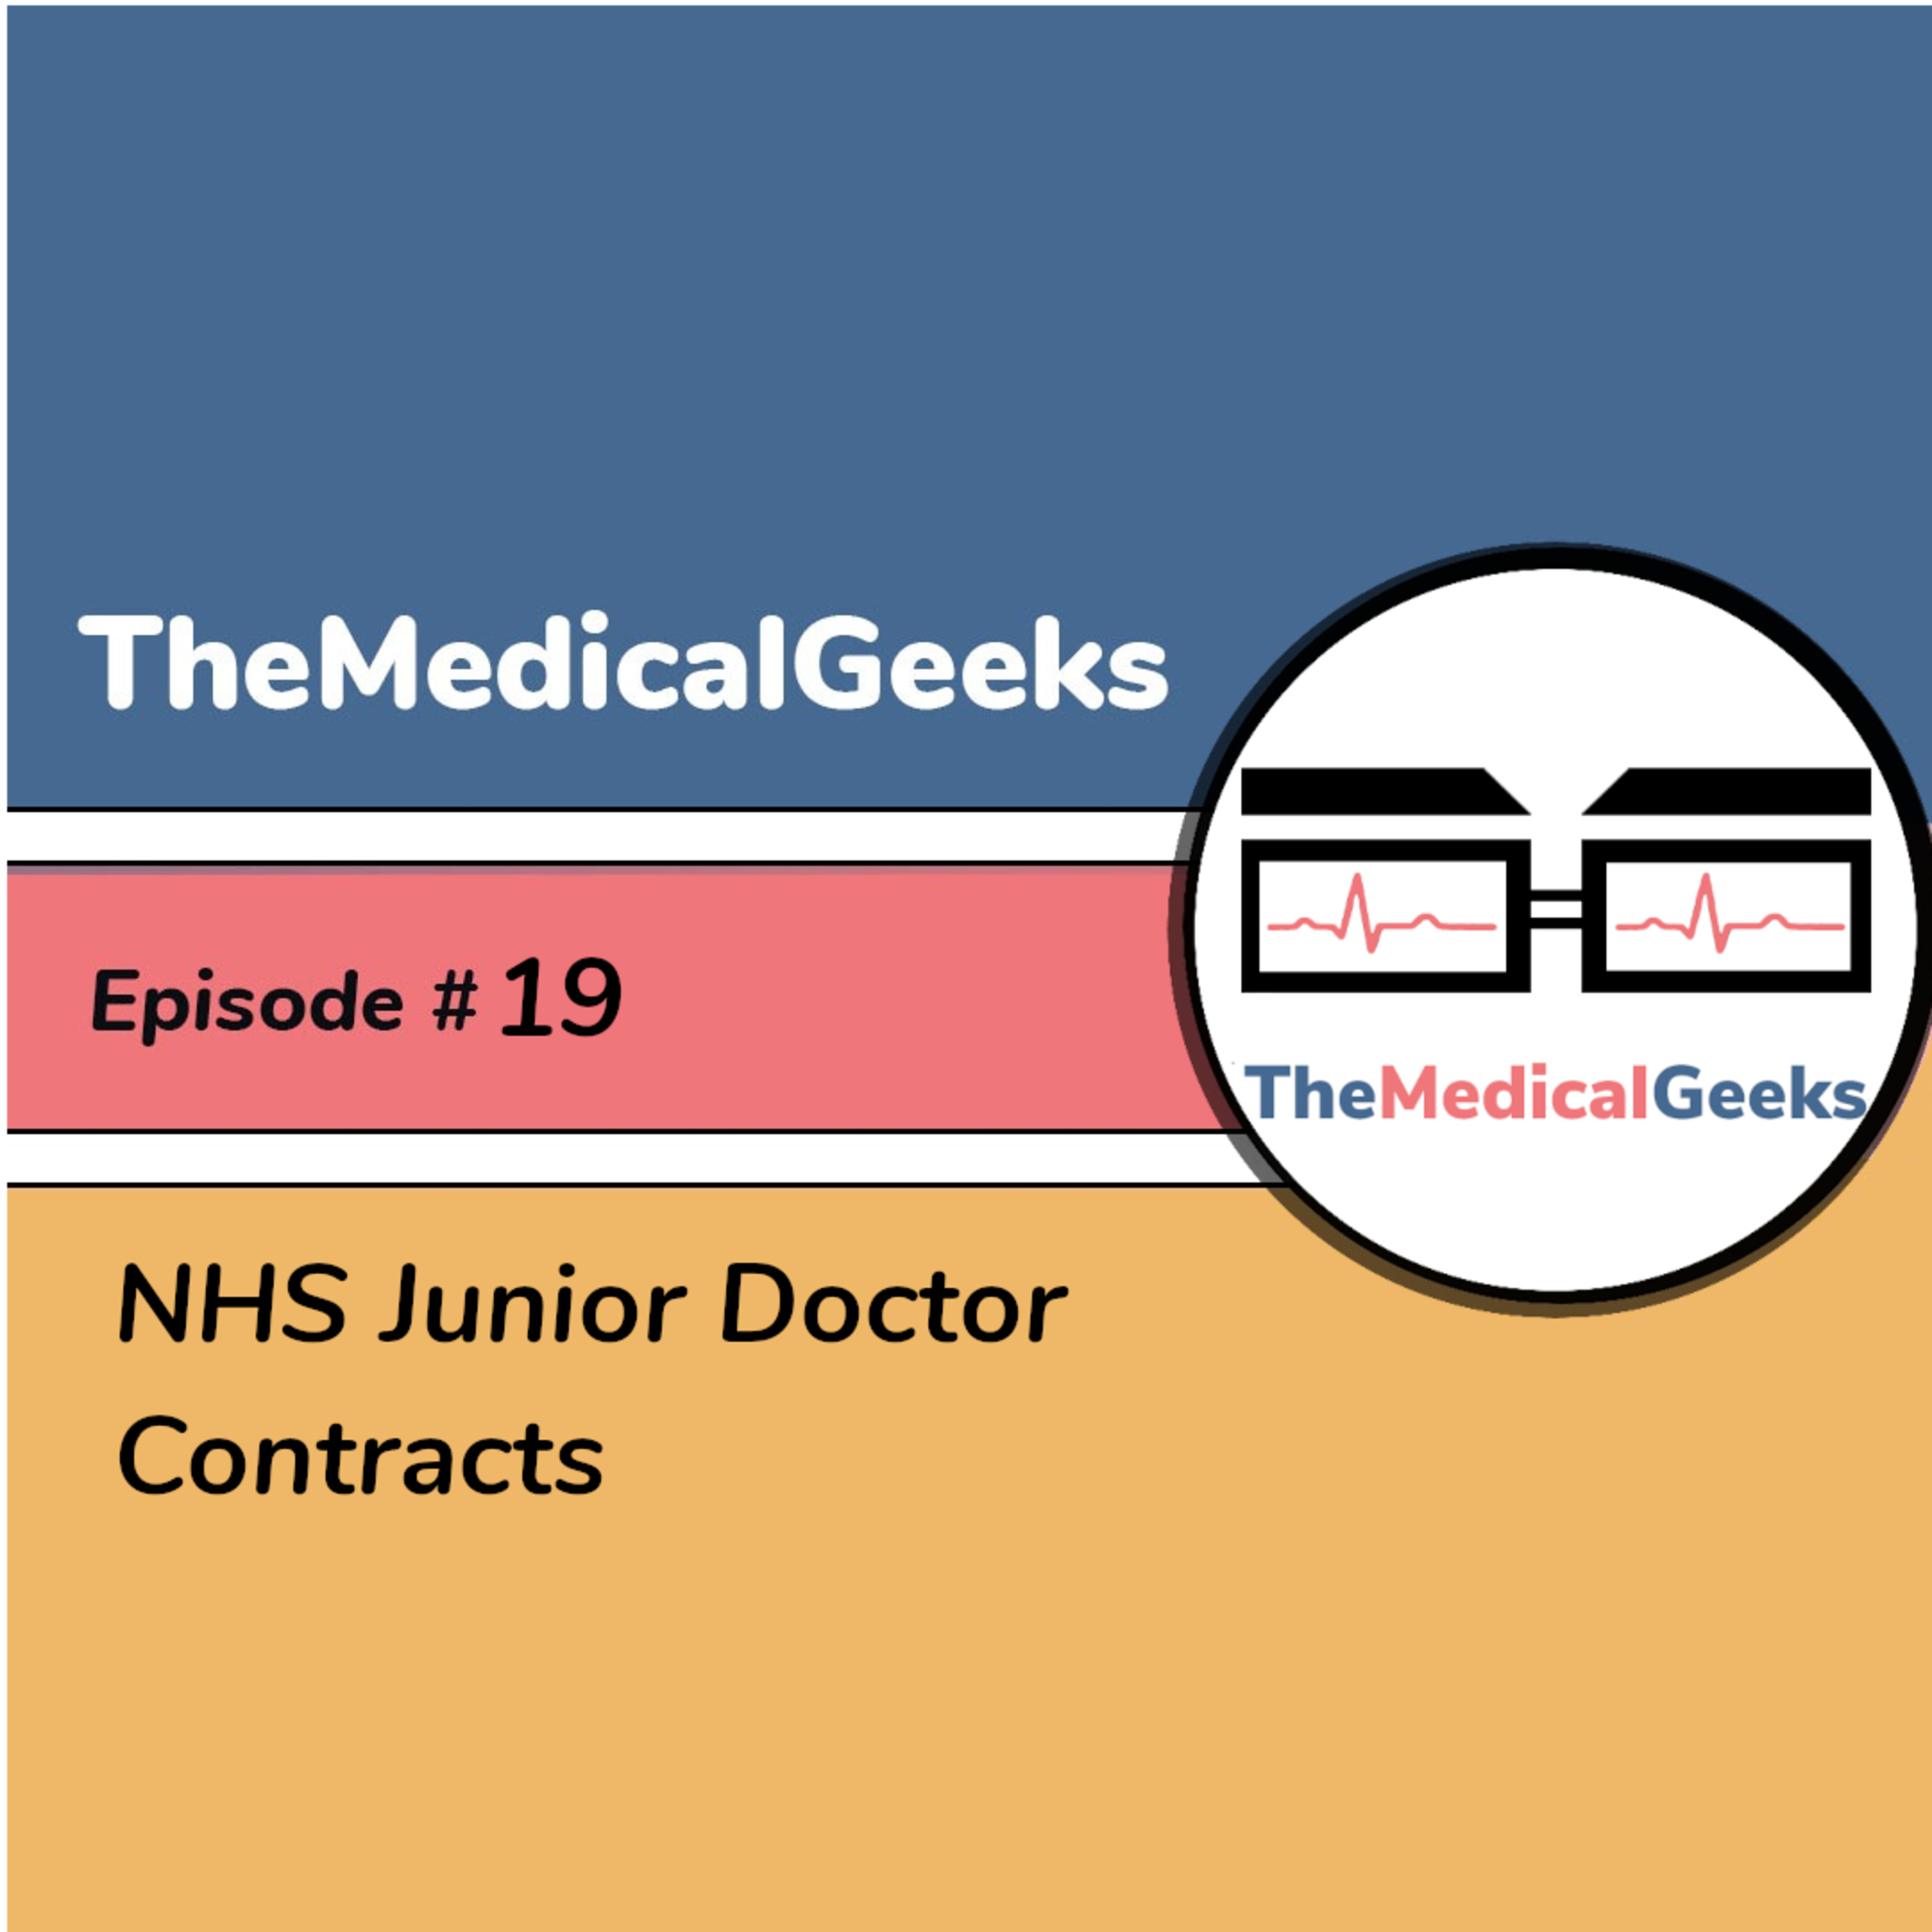 #19 Episode 19: NHS Junior Doctor Contracts